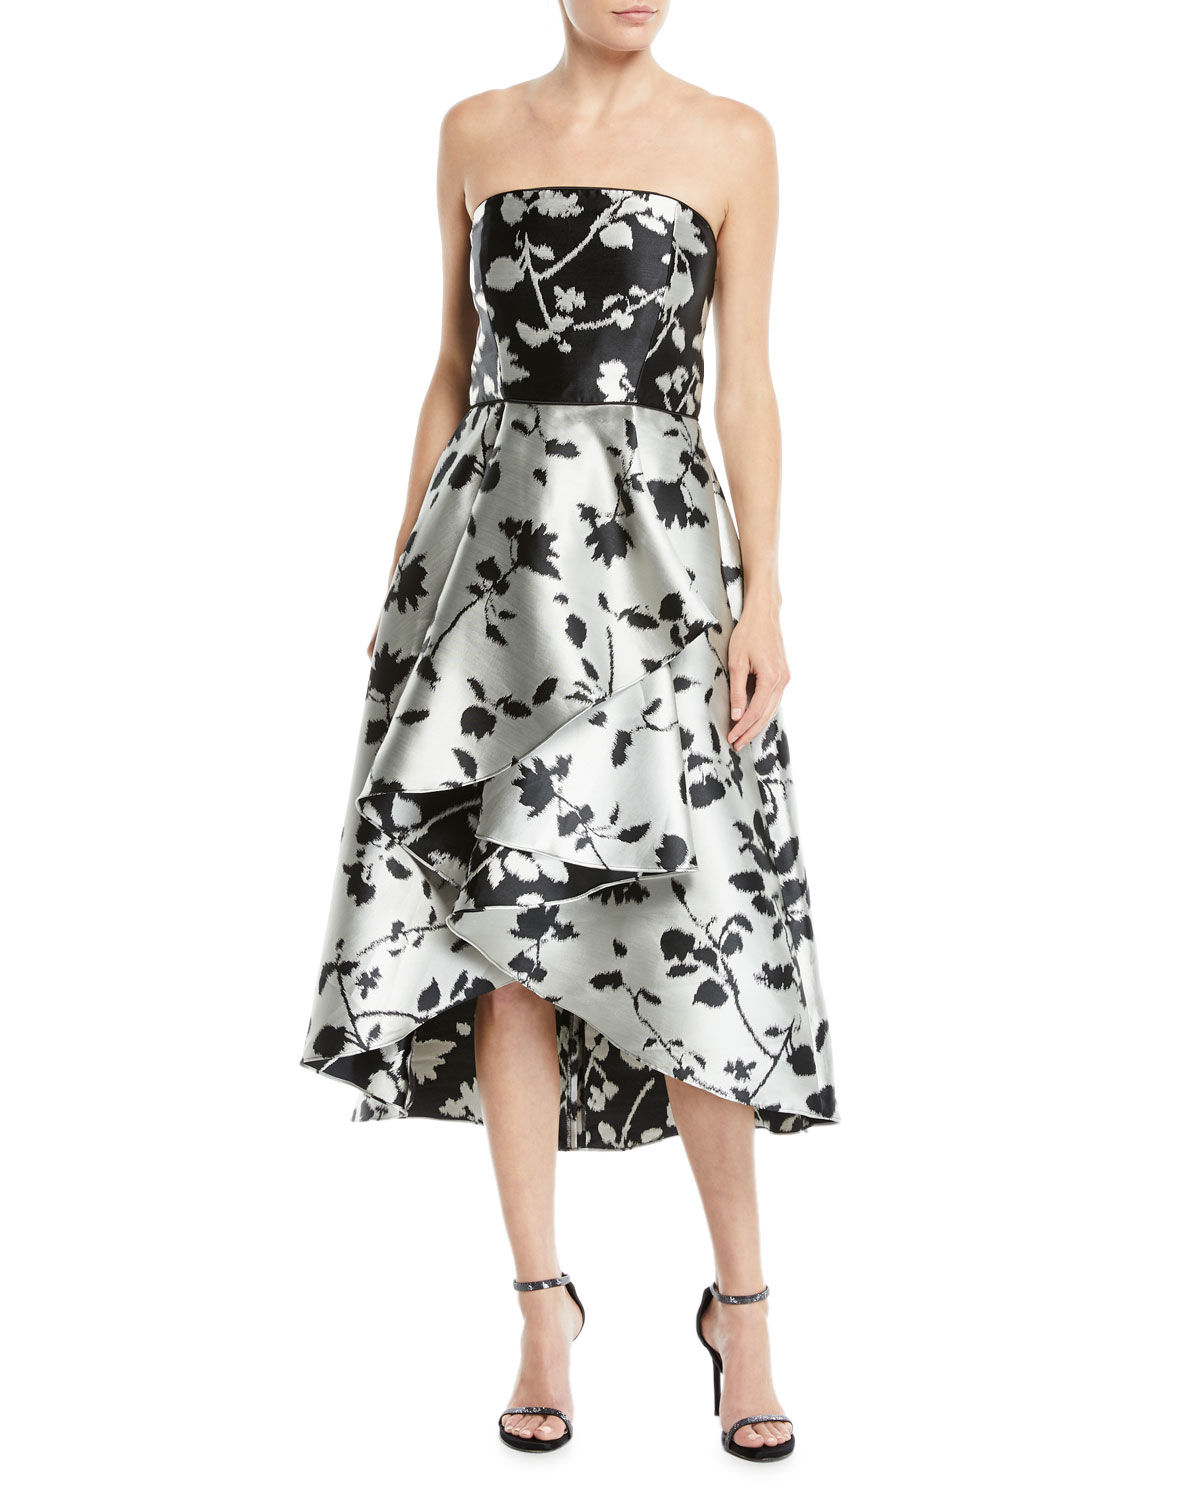 ac1397f6fab Shoshanna Isbell Strapless Fit-and-Flare Floral-Jacquard High-Low Cocktail  Dress